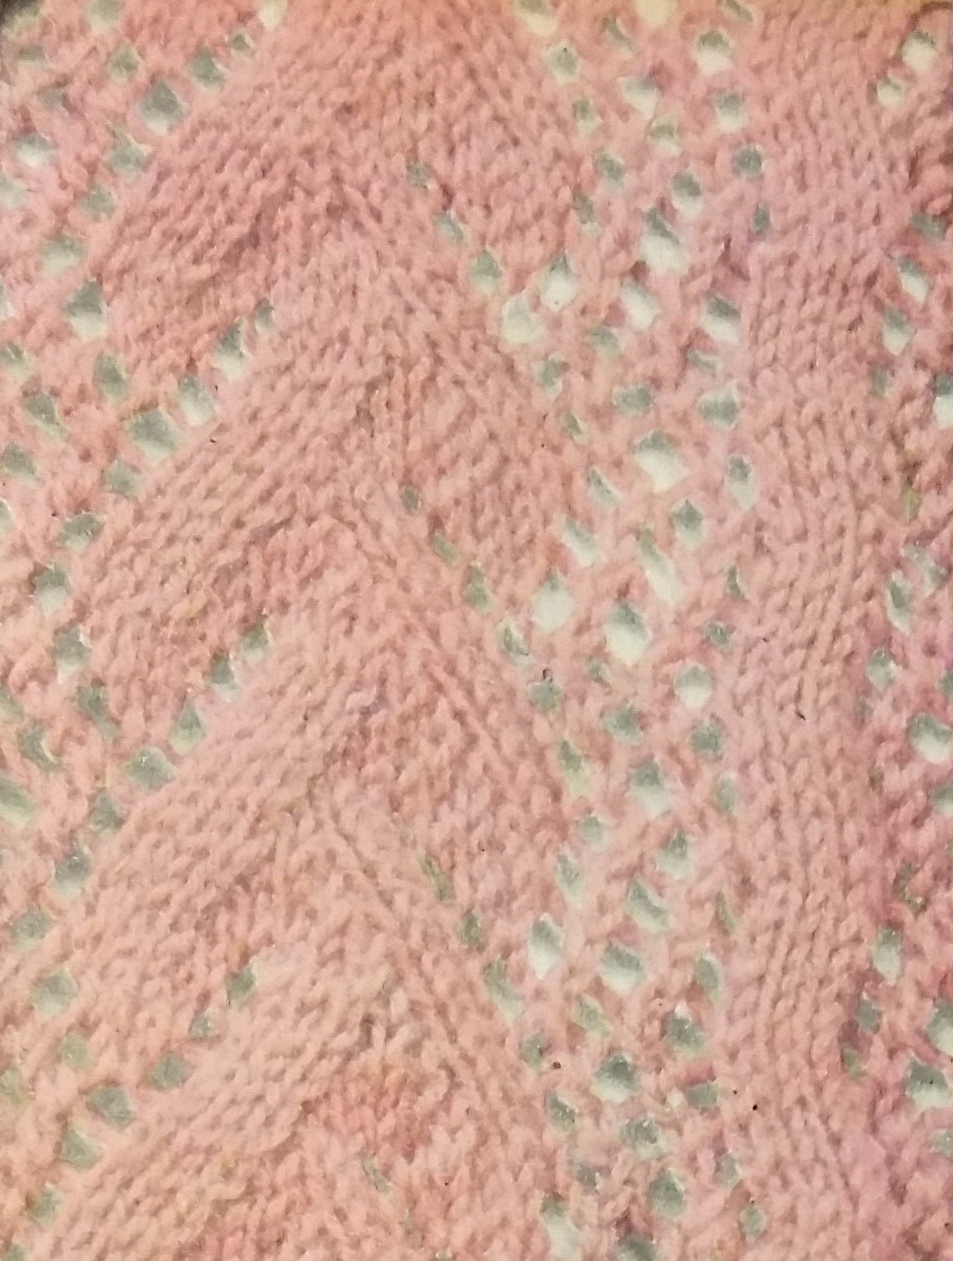 Knitting Now and Then: Print o\' the Wave, But Not Quite